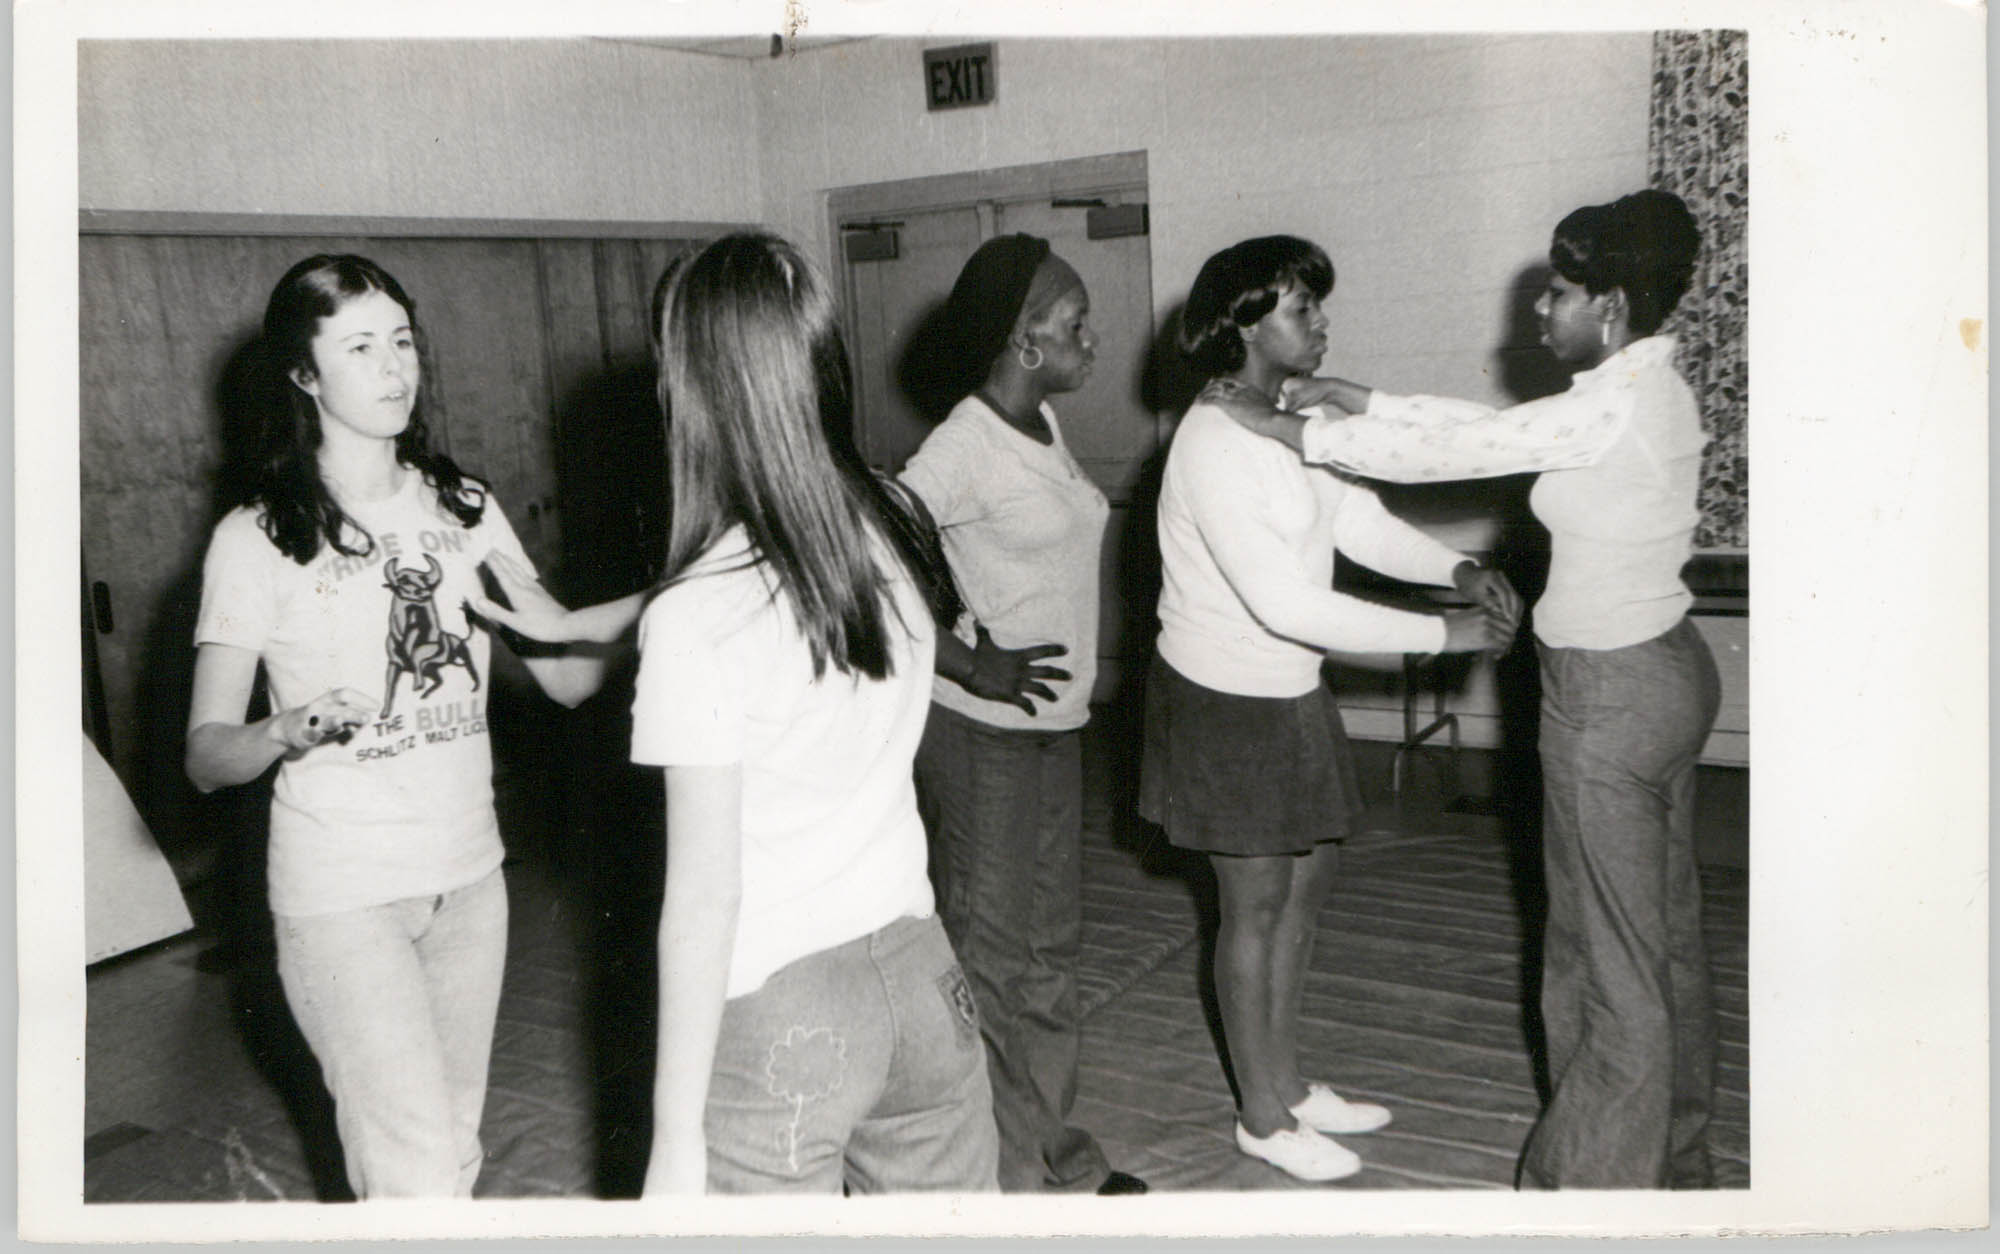 Photograph of a Group of Dancers